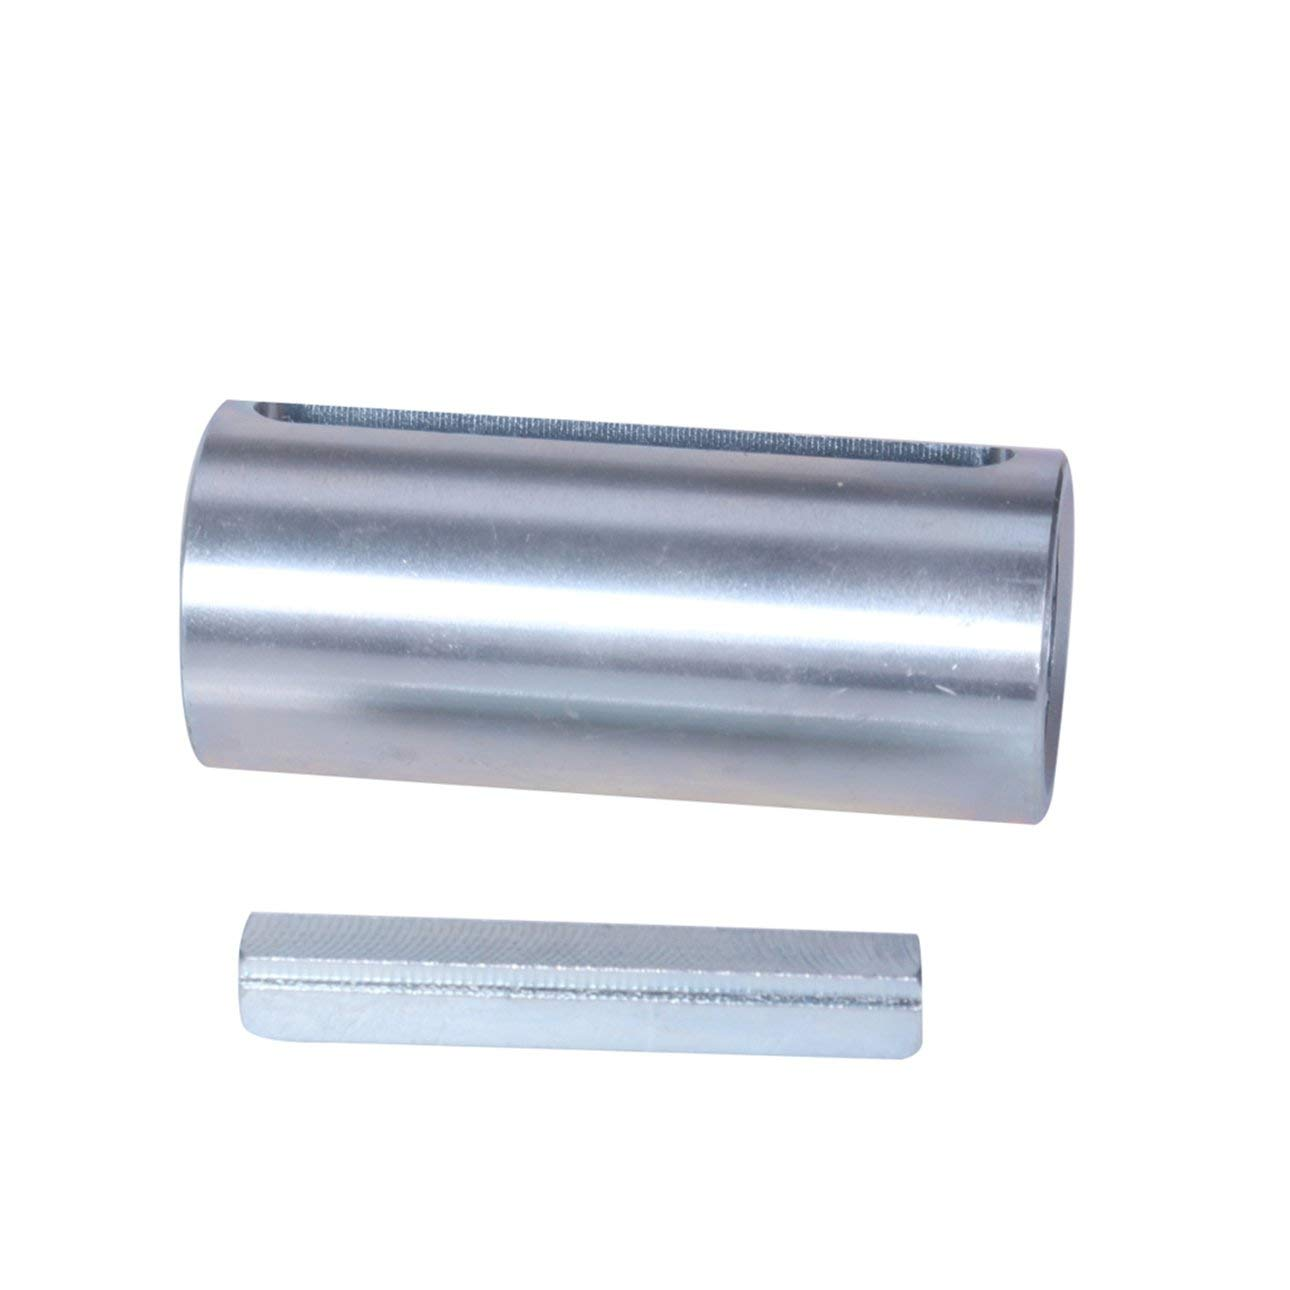 Silver 3//4 to 1 Inch w//Step Key Engine Pulley Crank Shaft Sleeve Adapter ADAP-1017 Essential Accessories